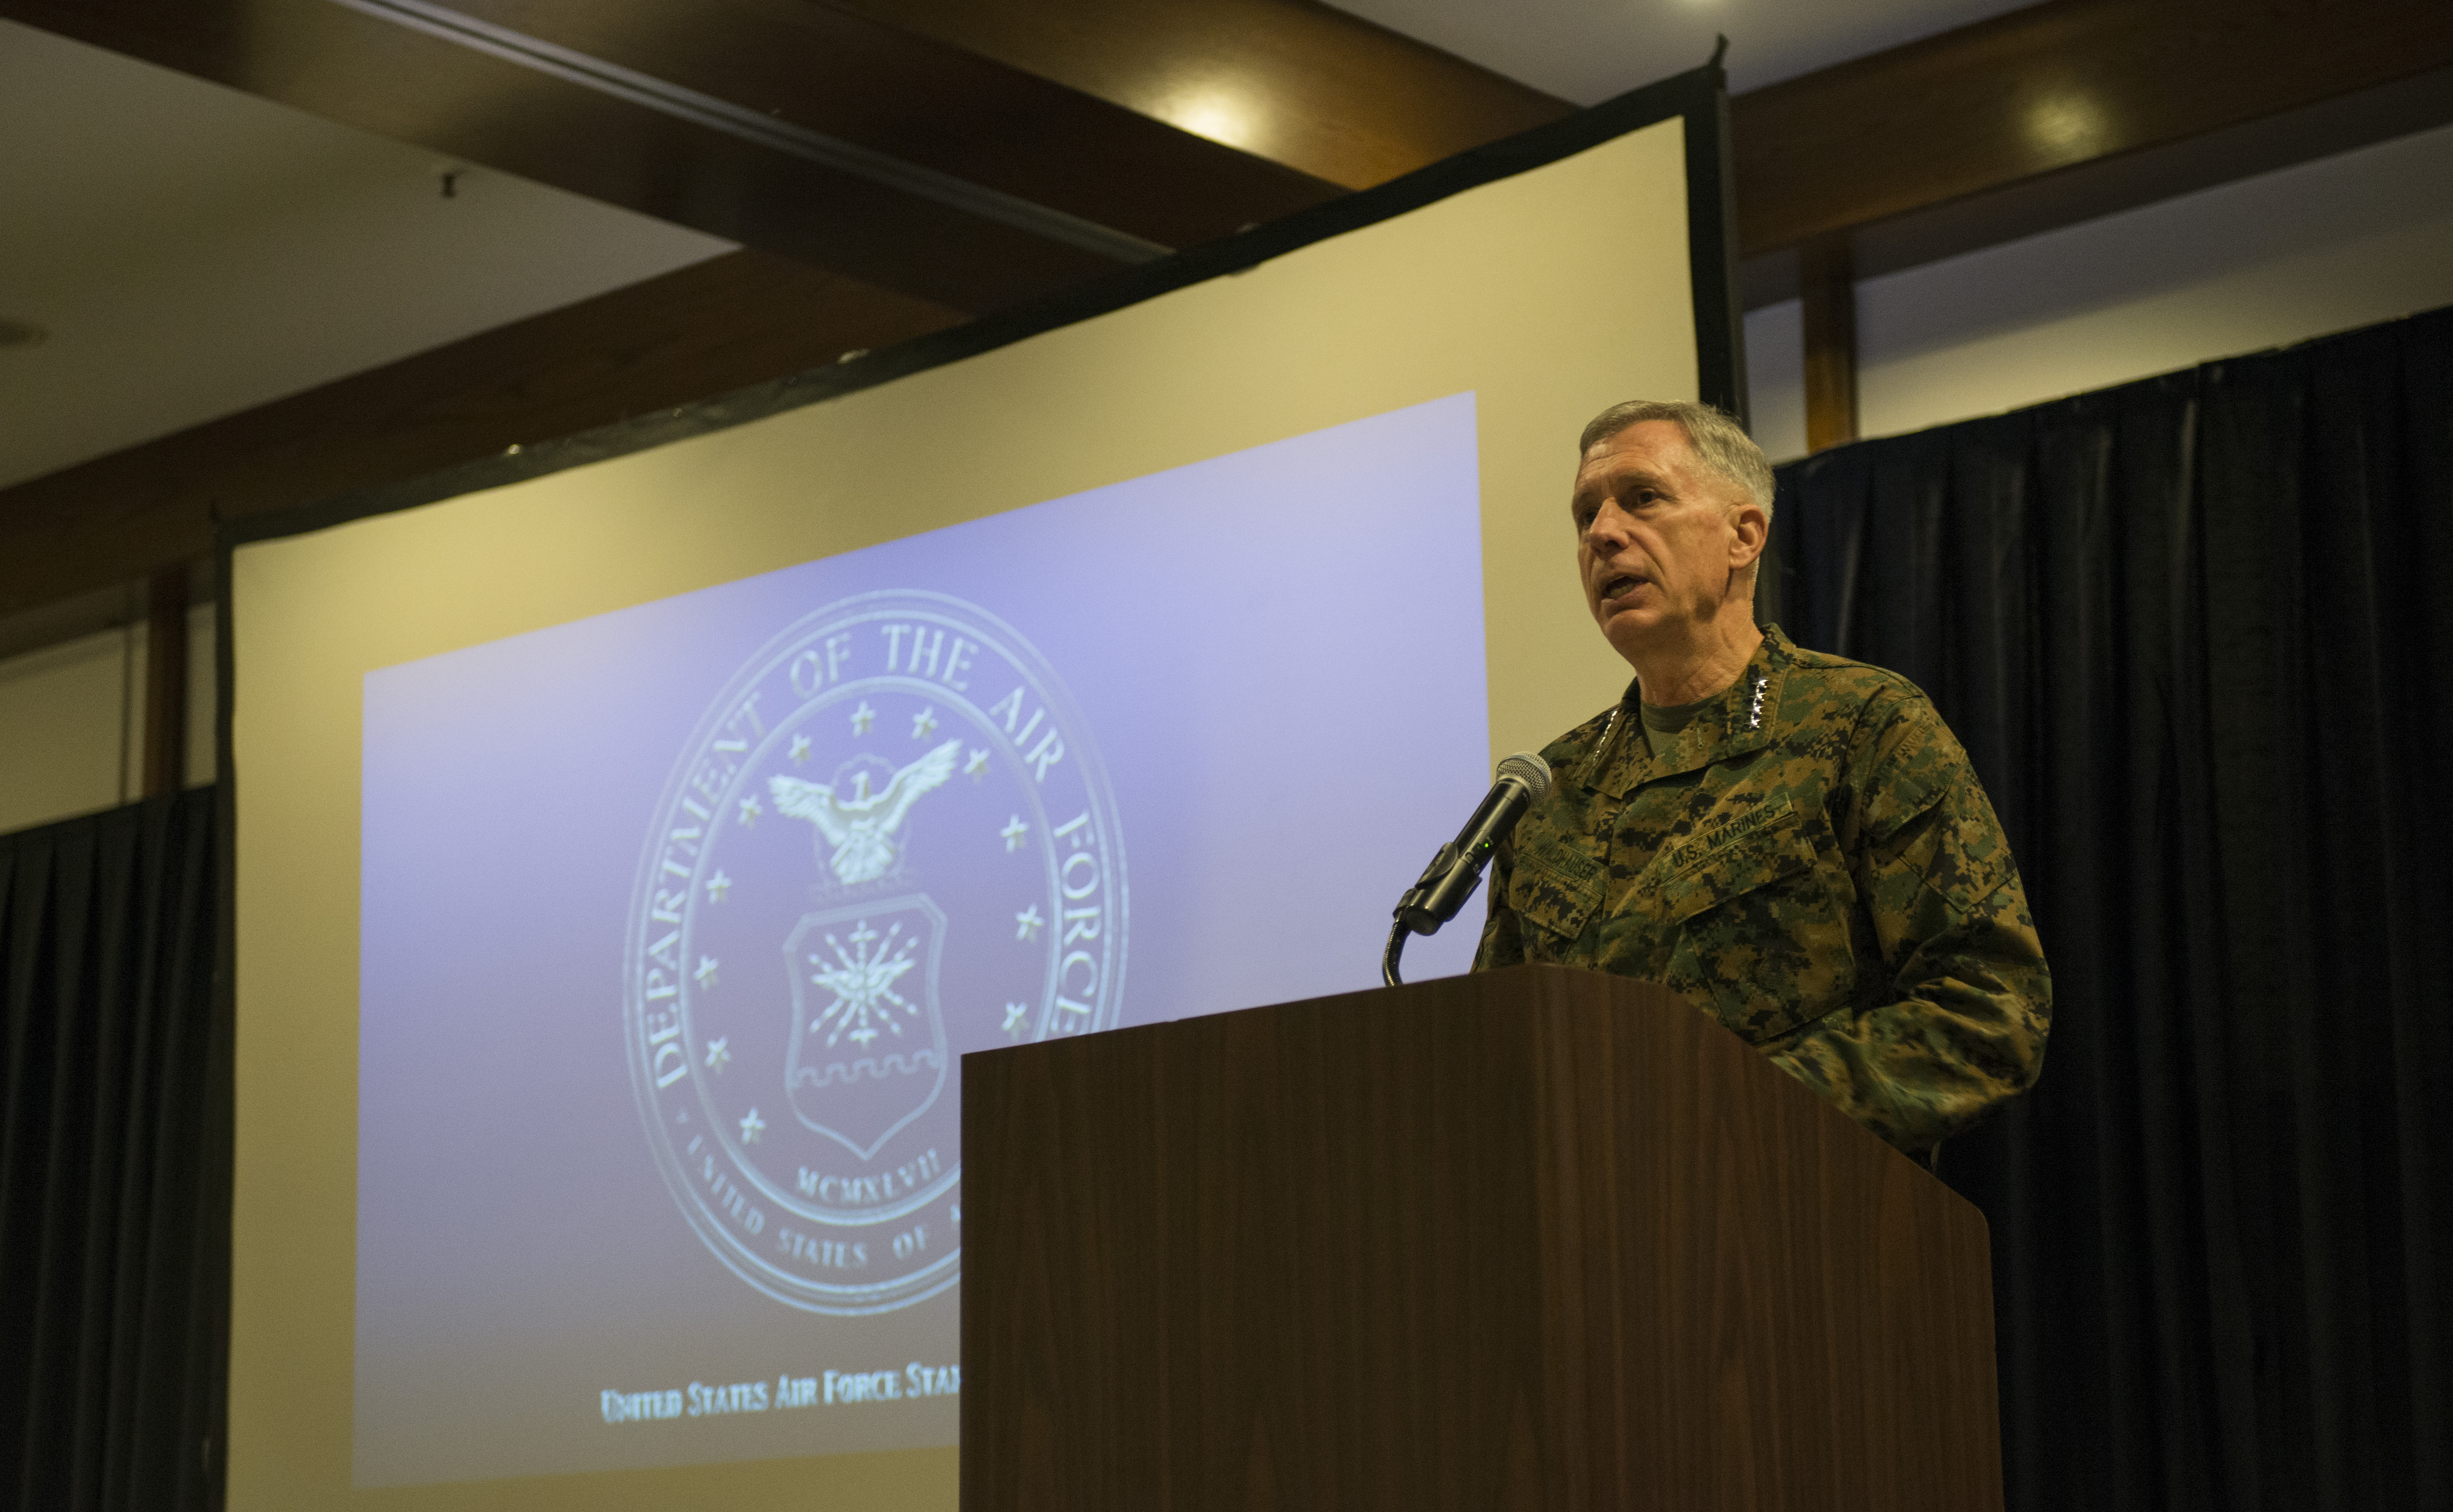 U.S. Marine Corps Gen. Thomas Waldhauser, U.S. Africa Command commander, gives his opening statement at the annual Regional Synchronization Working Group symposium at Ramstein Air Base, Germany, Nov. 14, 2016. The event is an Africa-focused security cooperation forum with leaders from the Department of State, the Department of Defense, the U.S. Agency for International Development and other personnel to synchronize efforts across the diplomatic, defense and developmental sectors in AFRICOM.